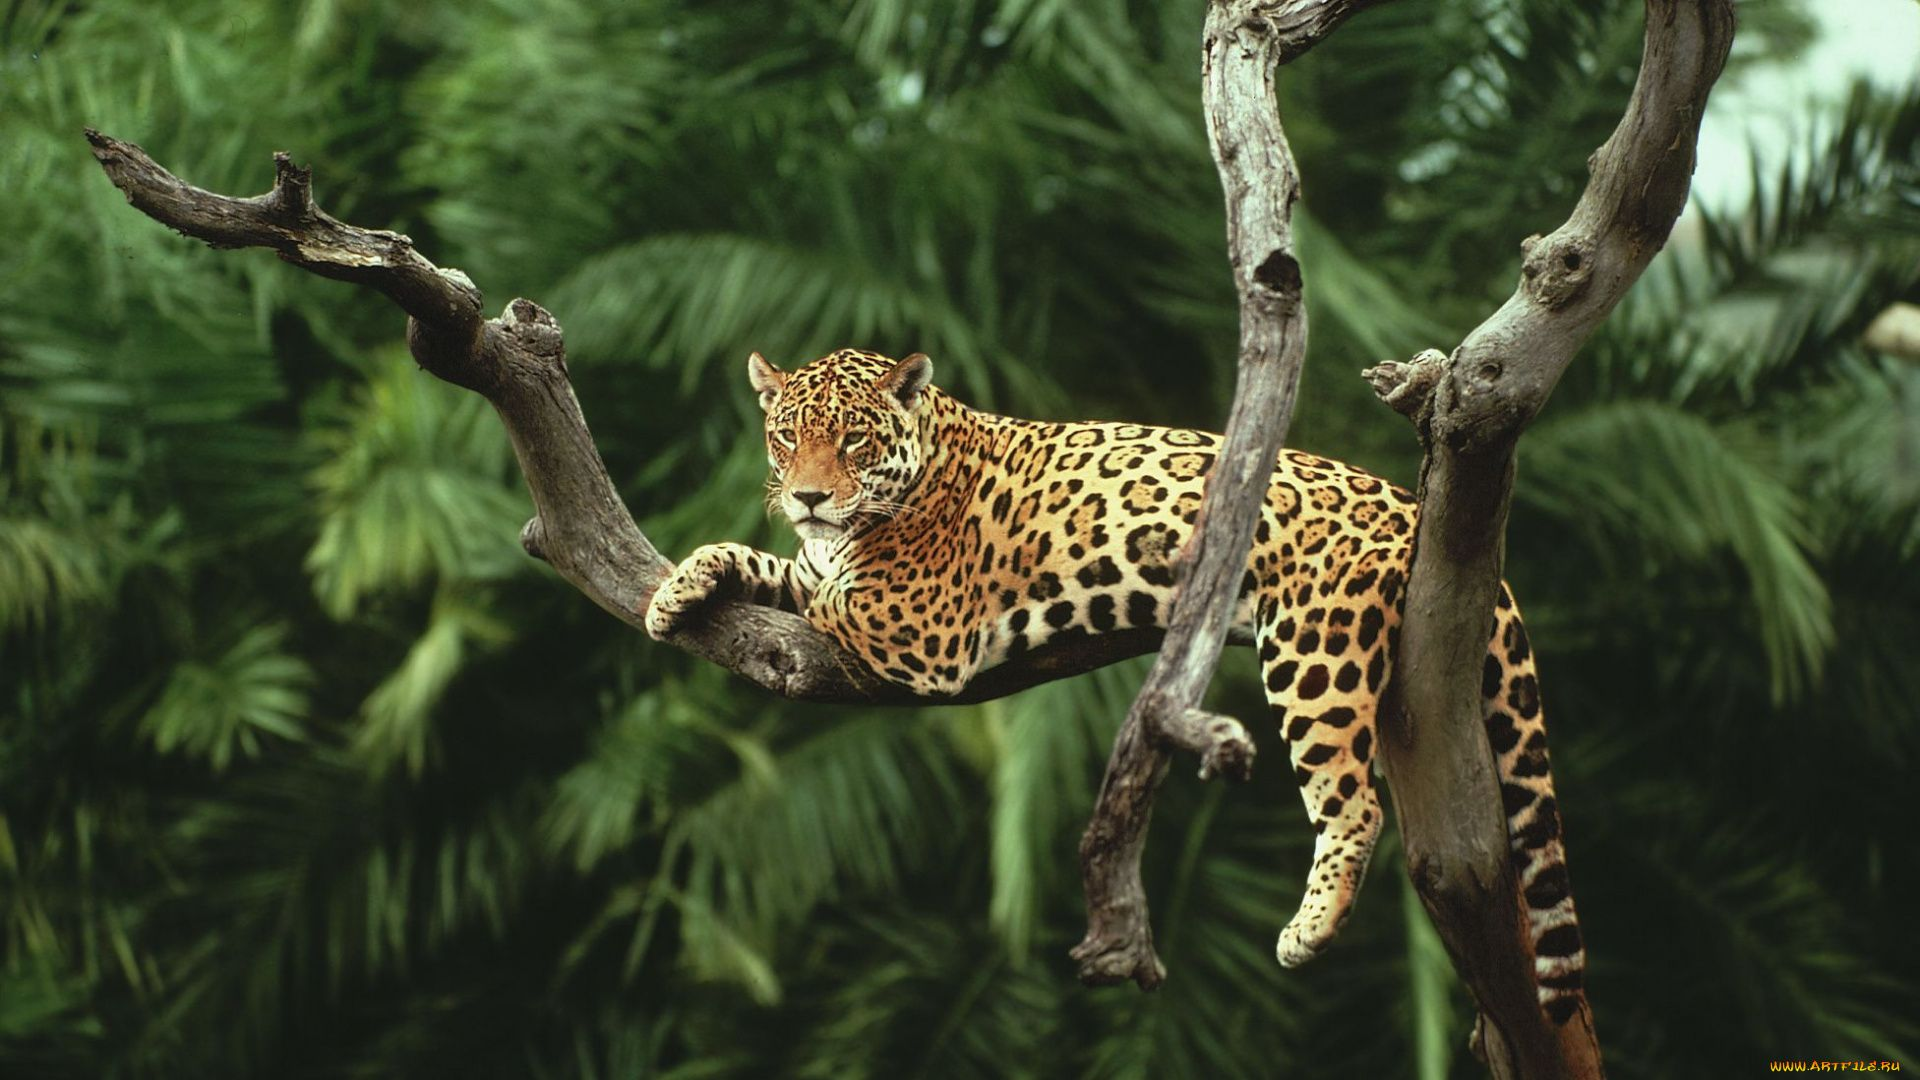 Rainforest Pictures With Animals